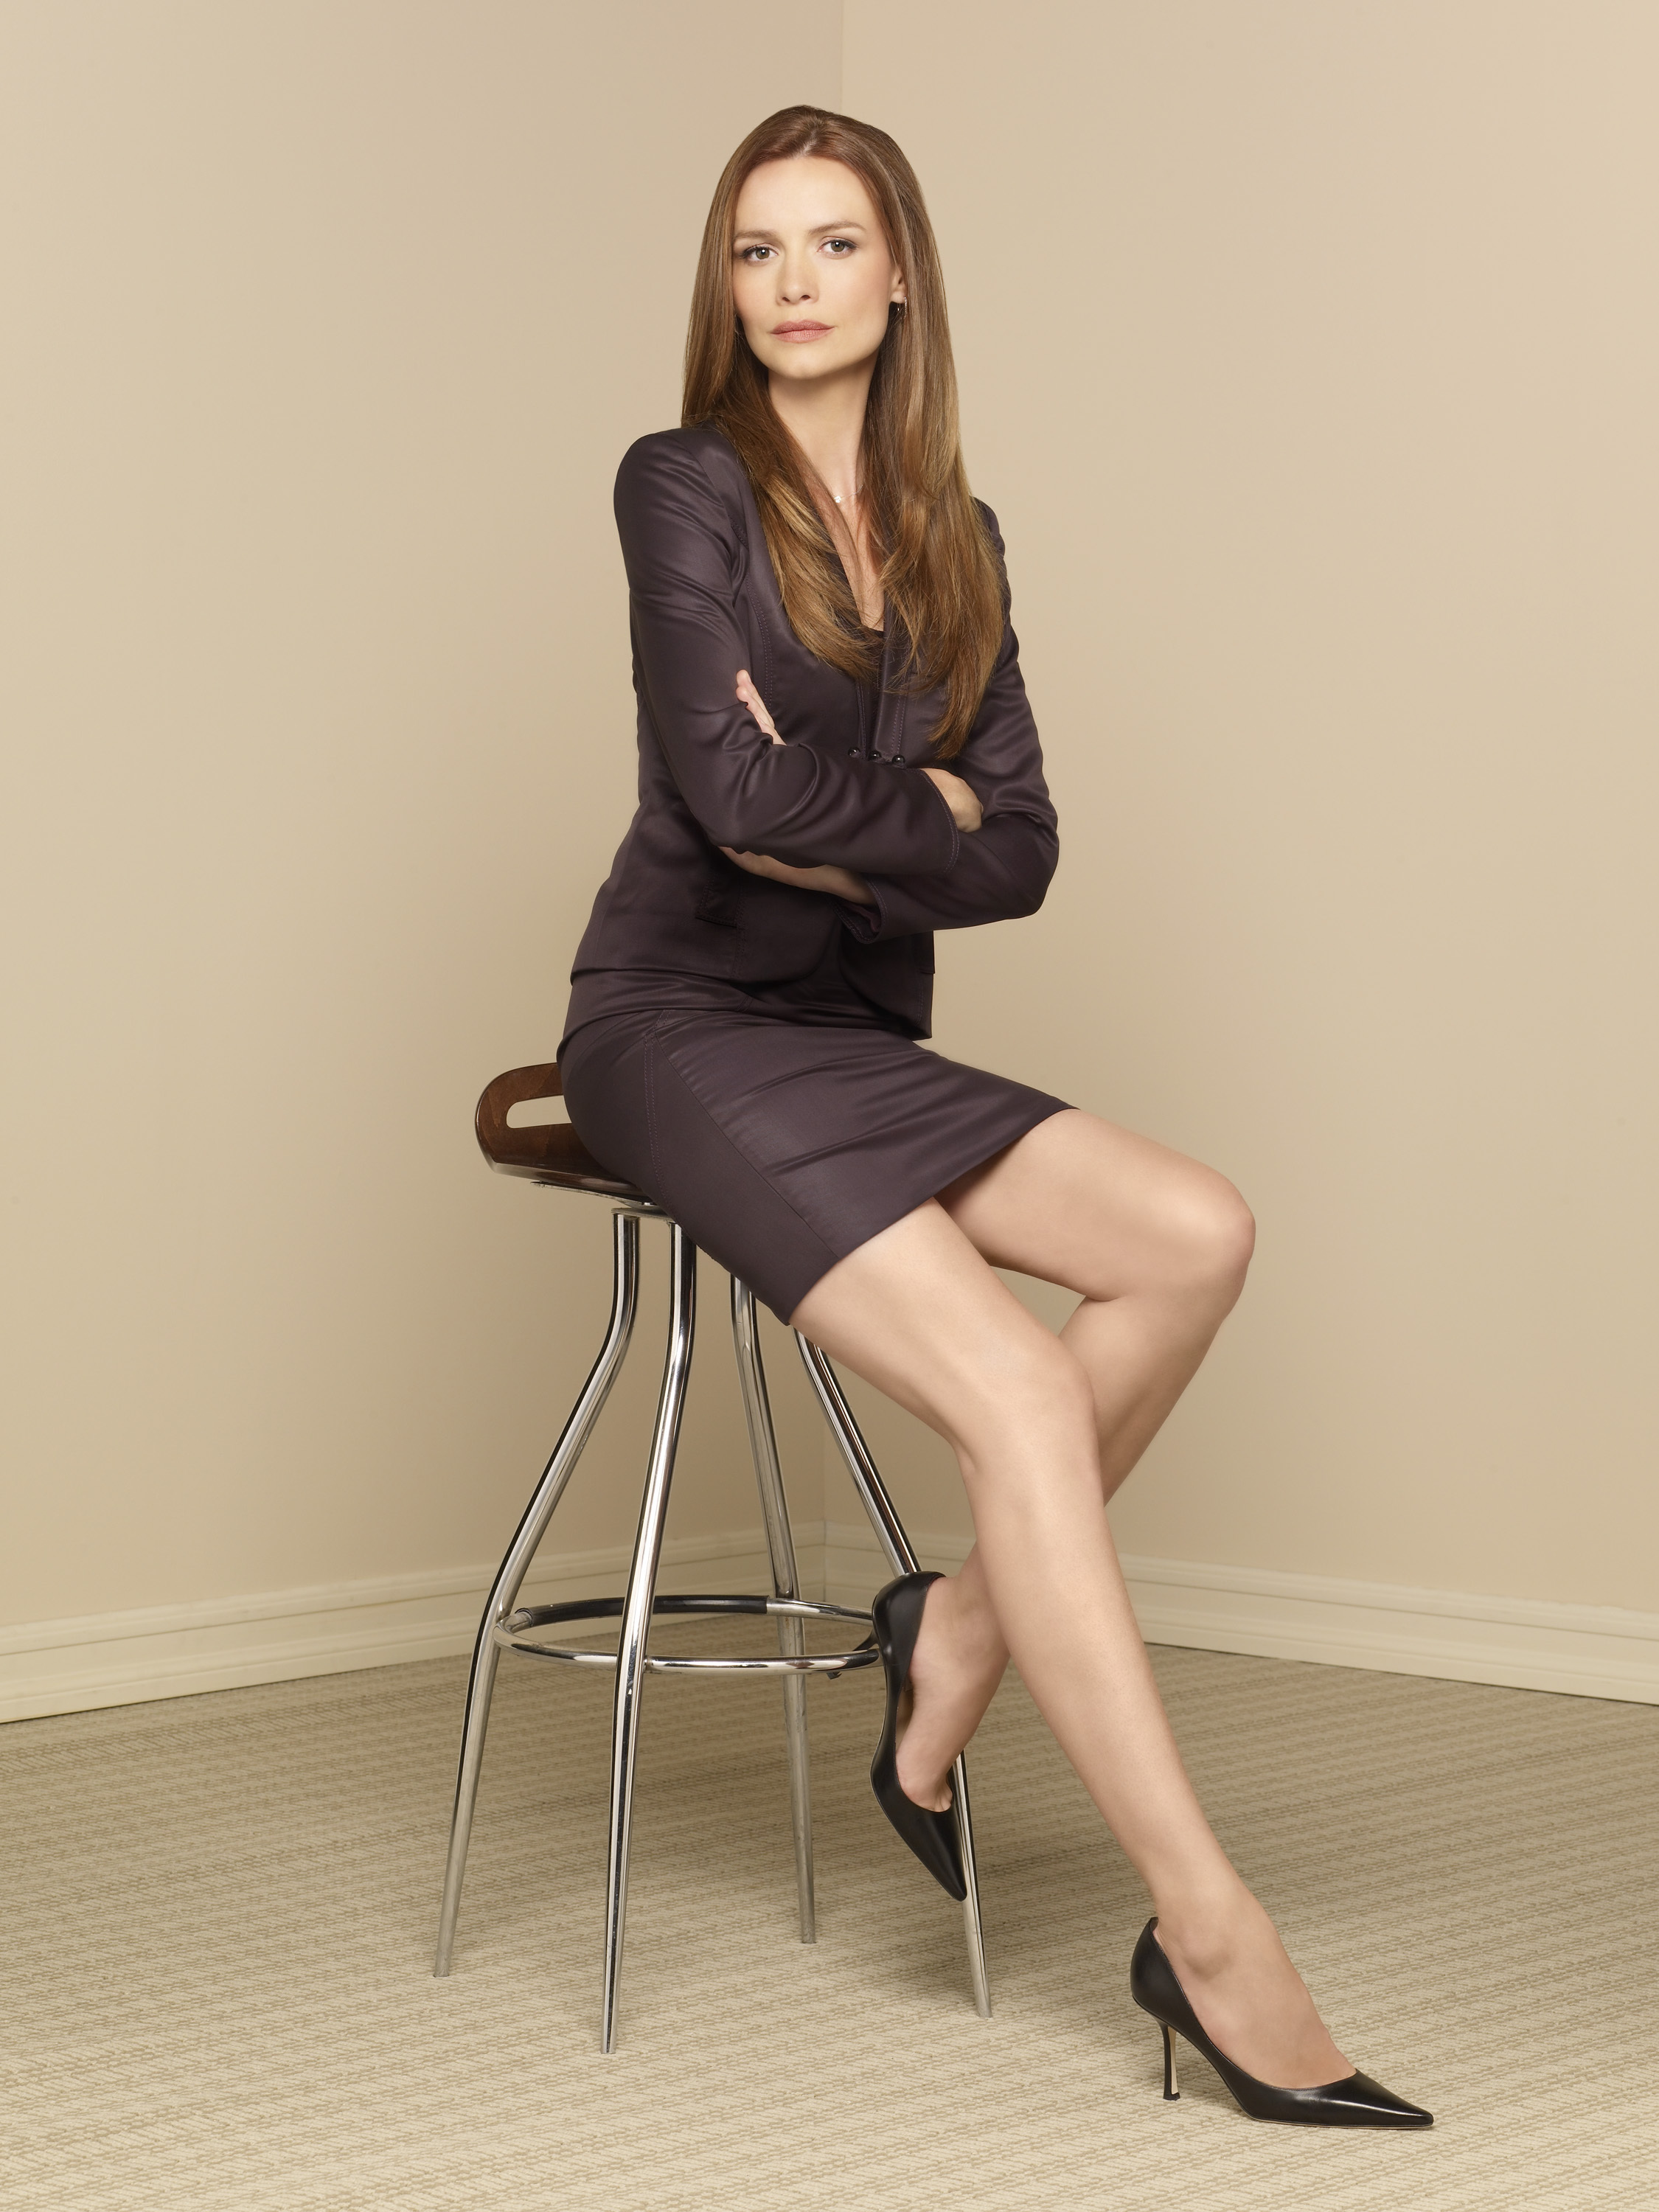 Saffron Burrows's Feet << wikiFeet